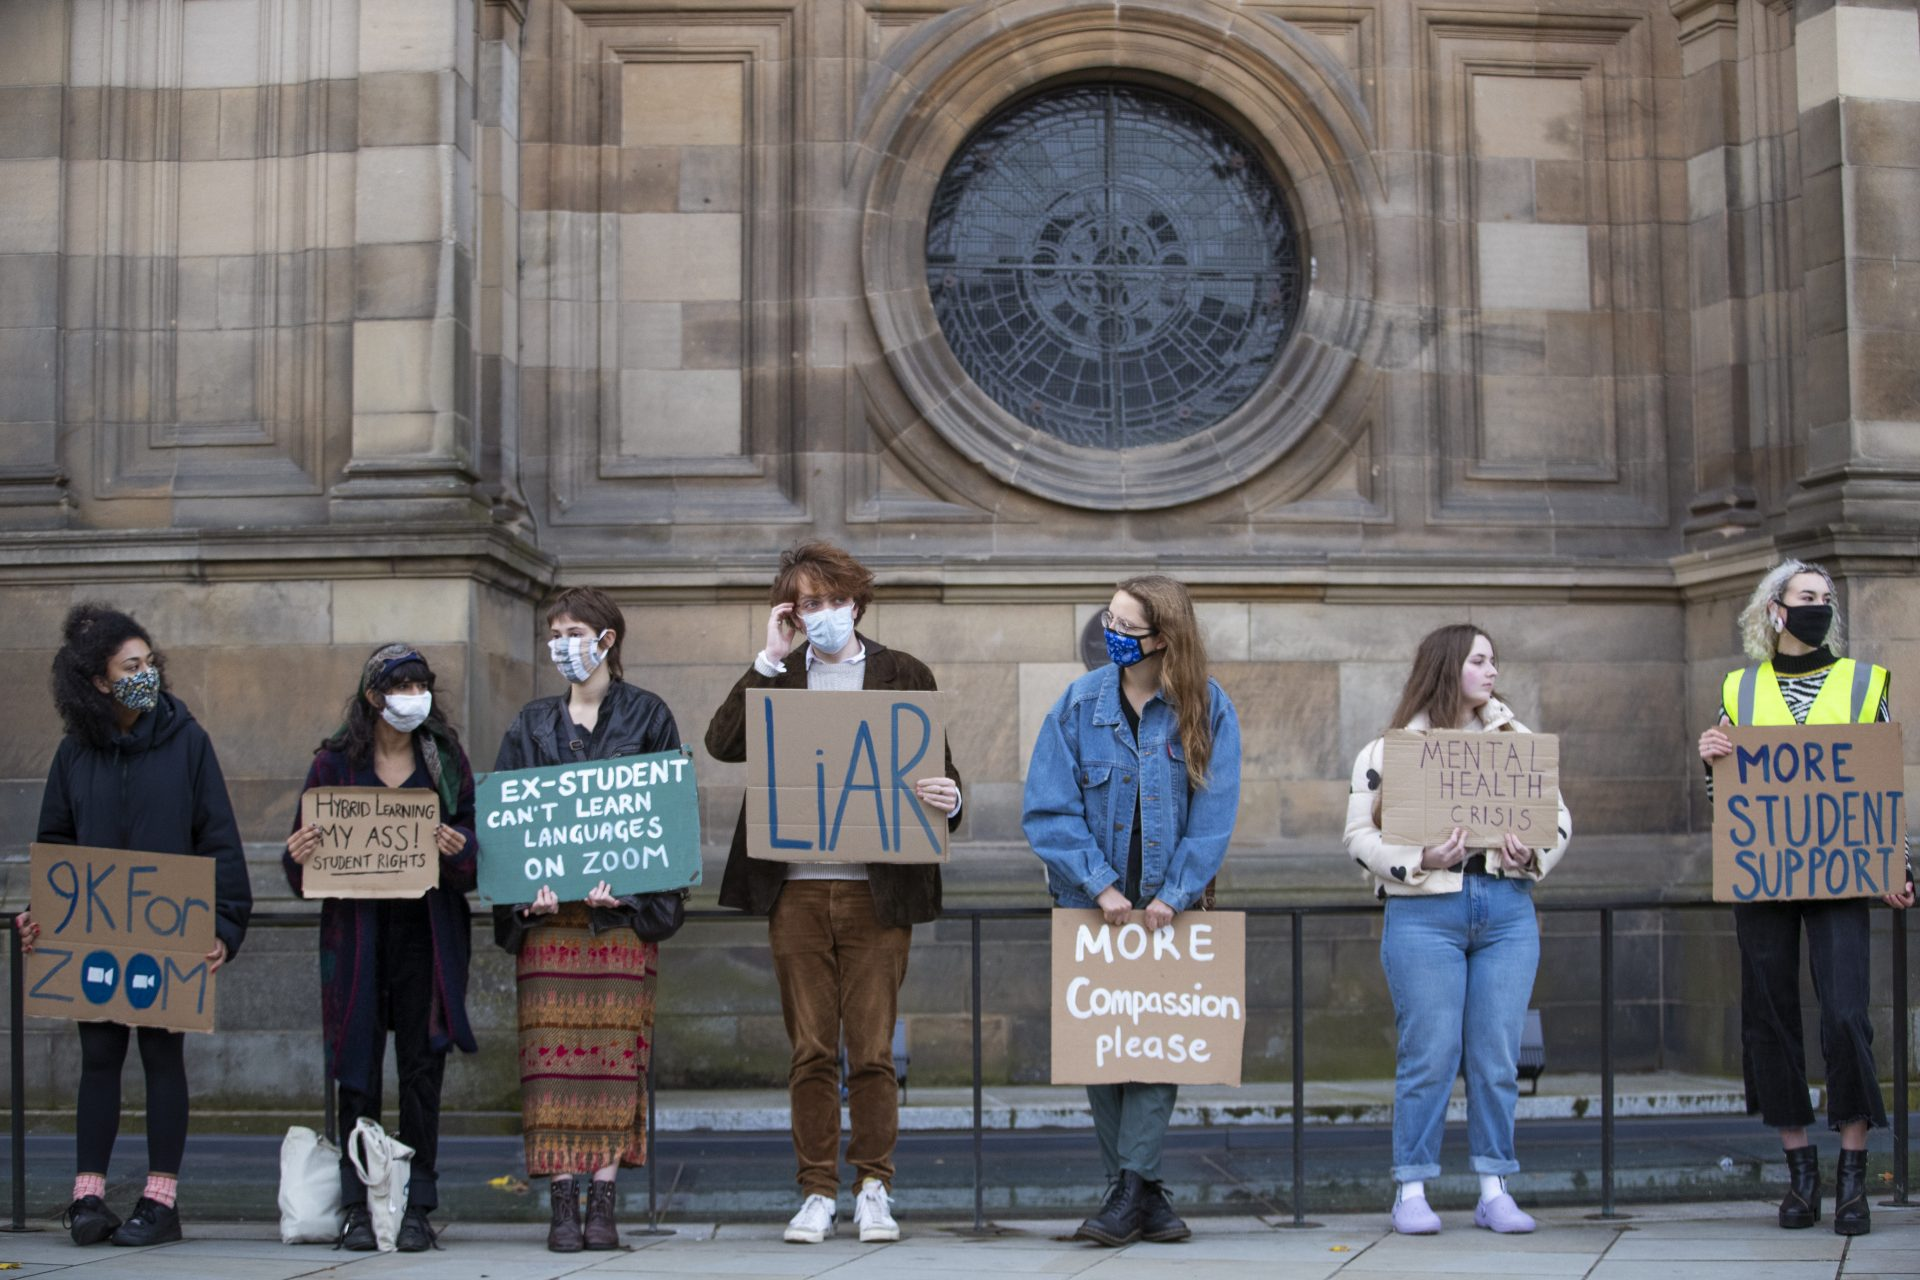 Students protest against hybrid learning proposals for universities. Photograph: Jane Barlow/PA.